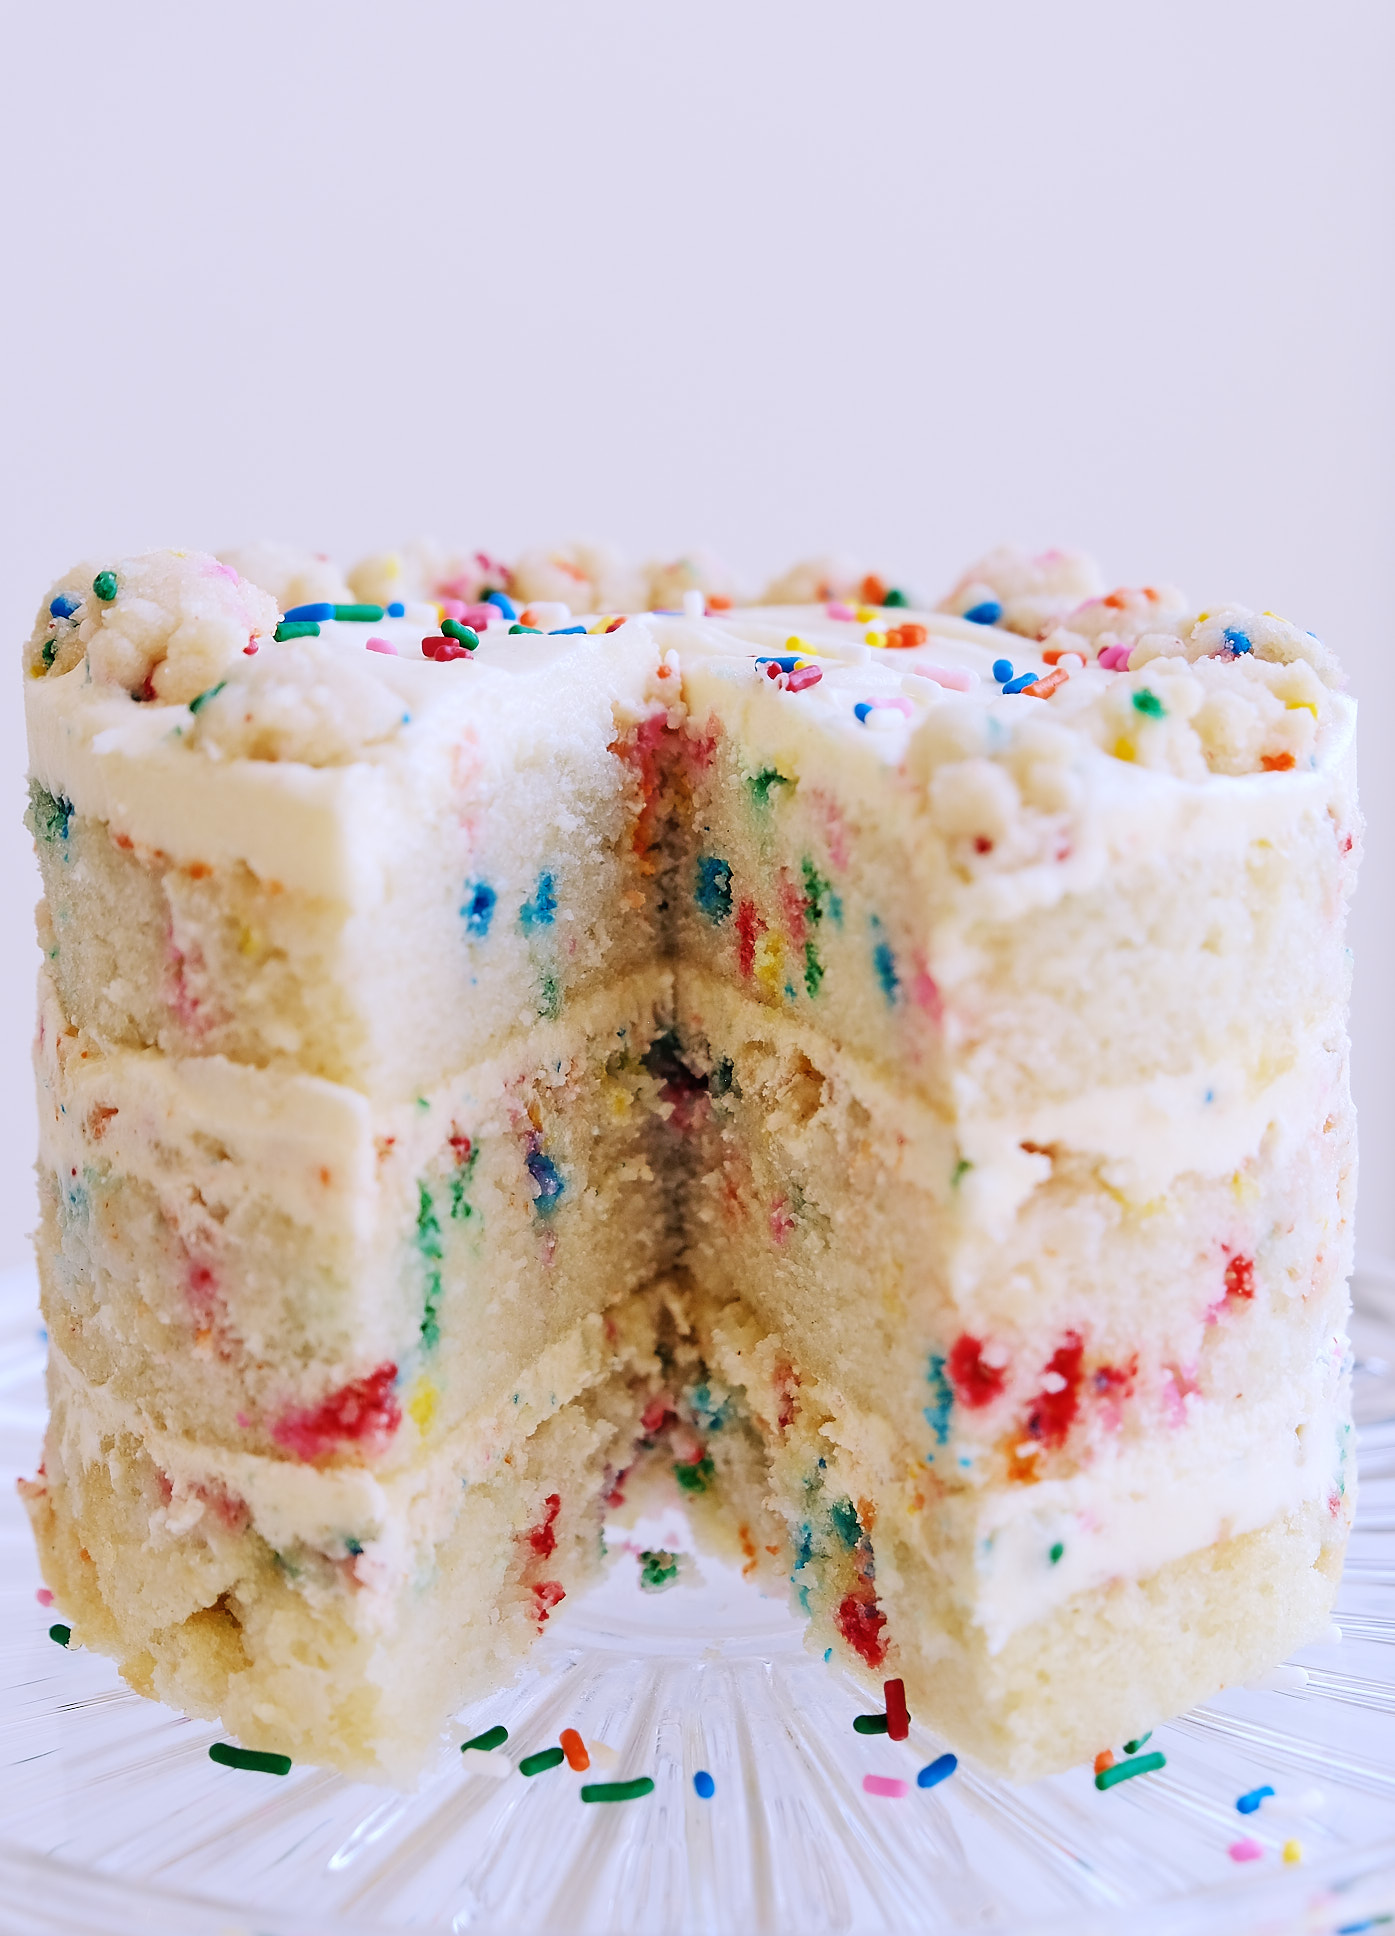 A side view of a dairy-free egg-free Milk Bar Birthday Cake on a cake stand.